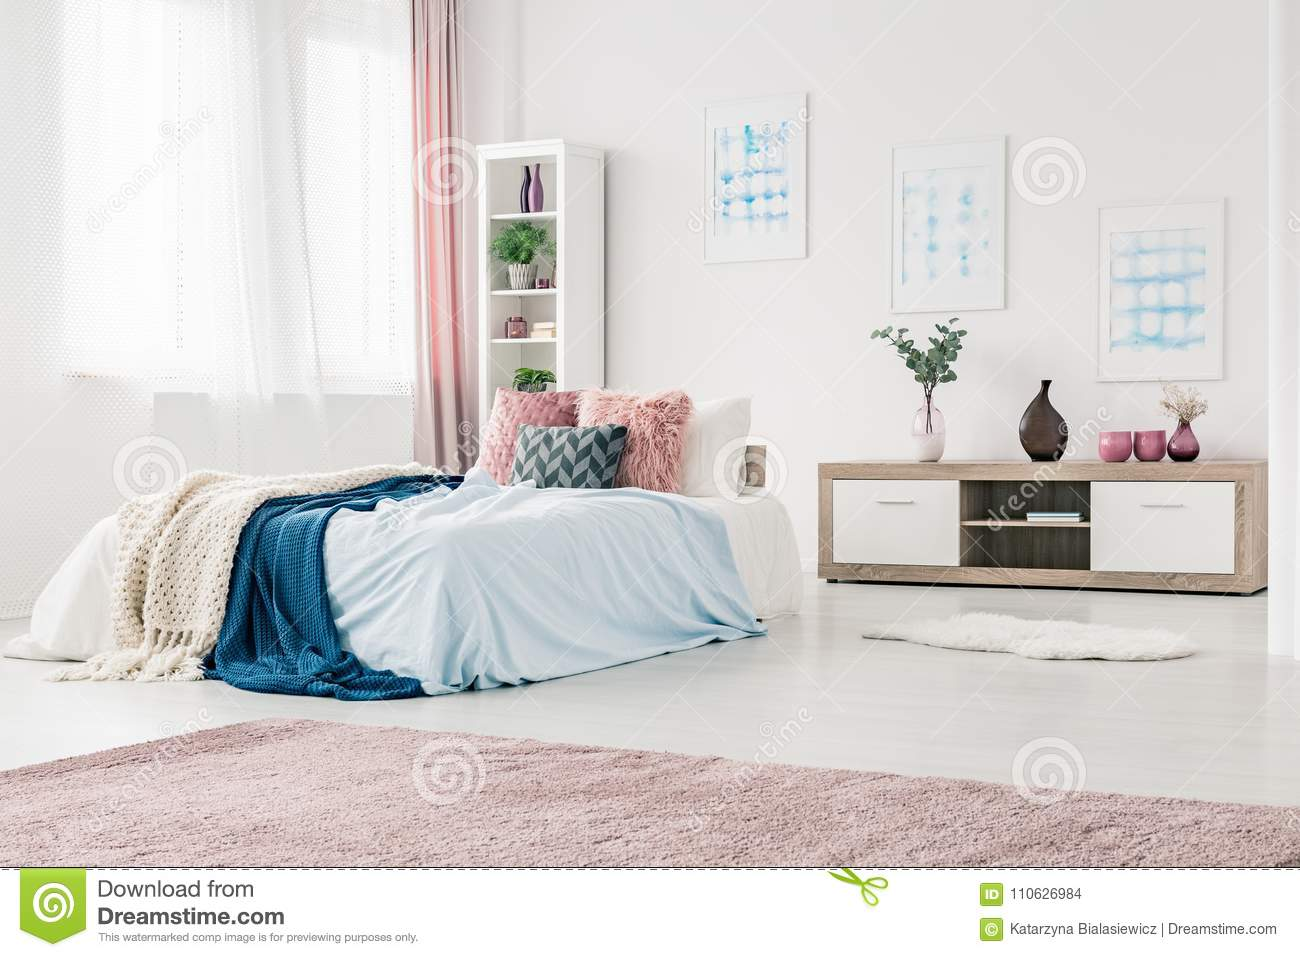 Blue And Pink Bedroom Interior Stock Photo Image Of Blue White 110626984